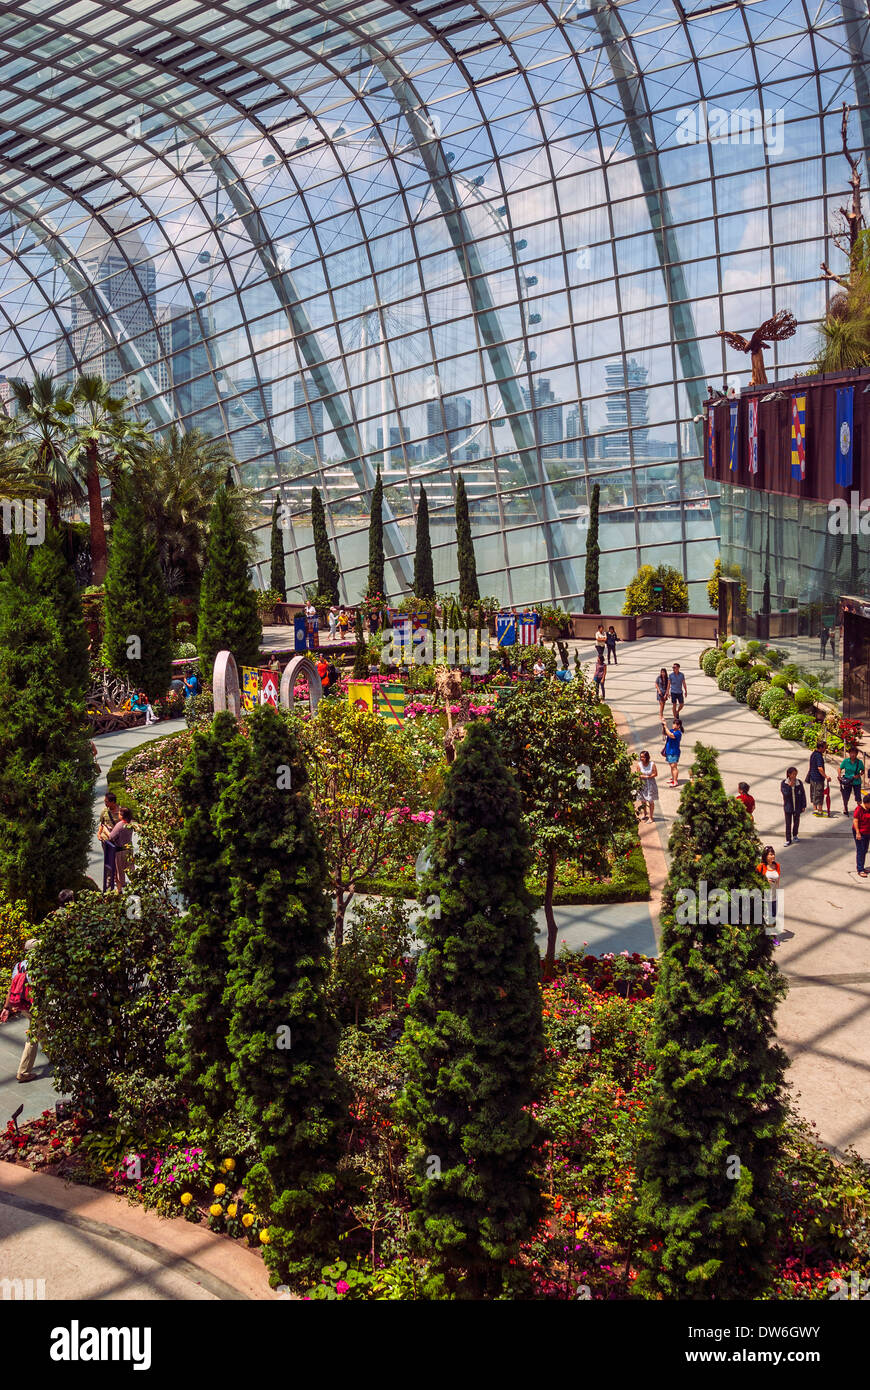 The Flower Dome, Gardens by the Bay, Singapore - Stock Image